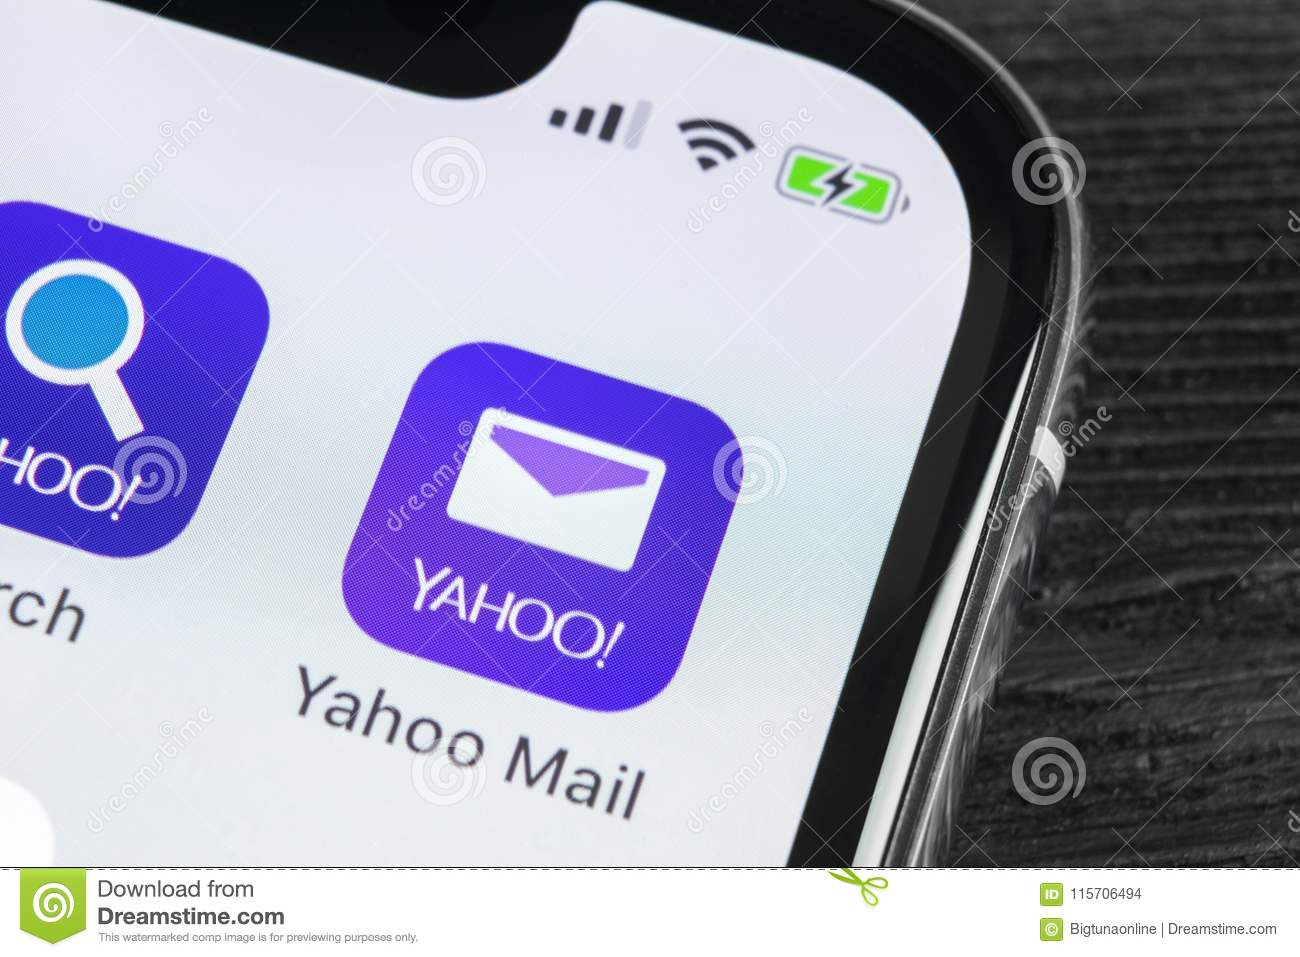 yahoo app download for apple